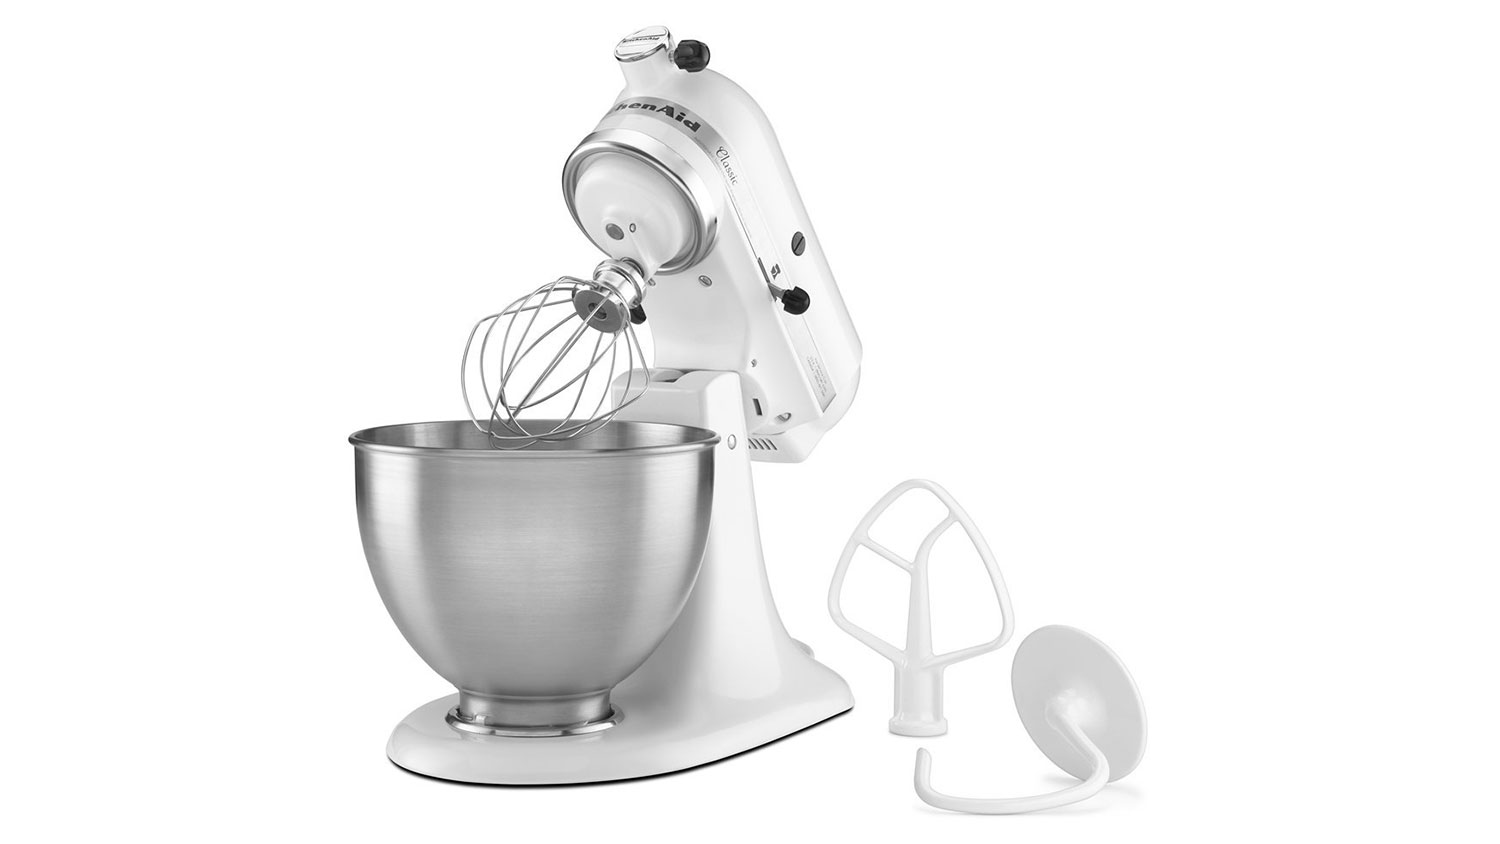 Kitchen Aid 4.5-Quart Stand Mixer